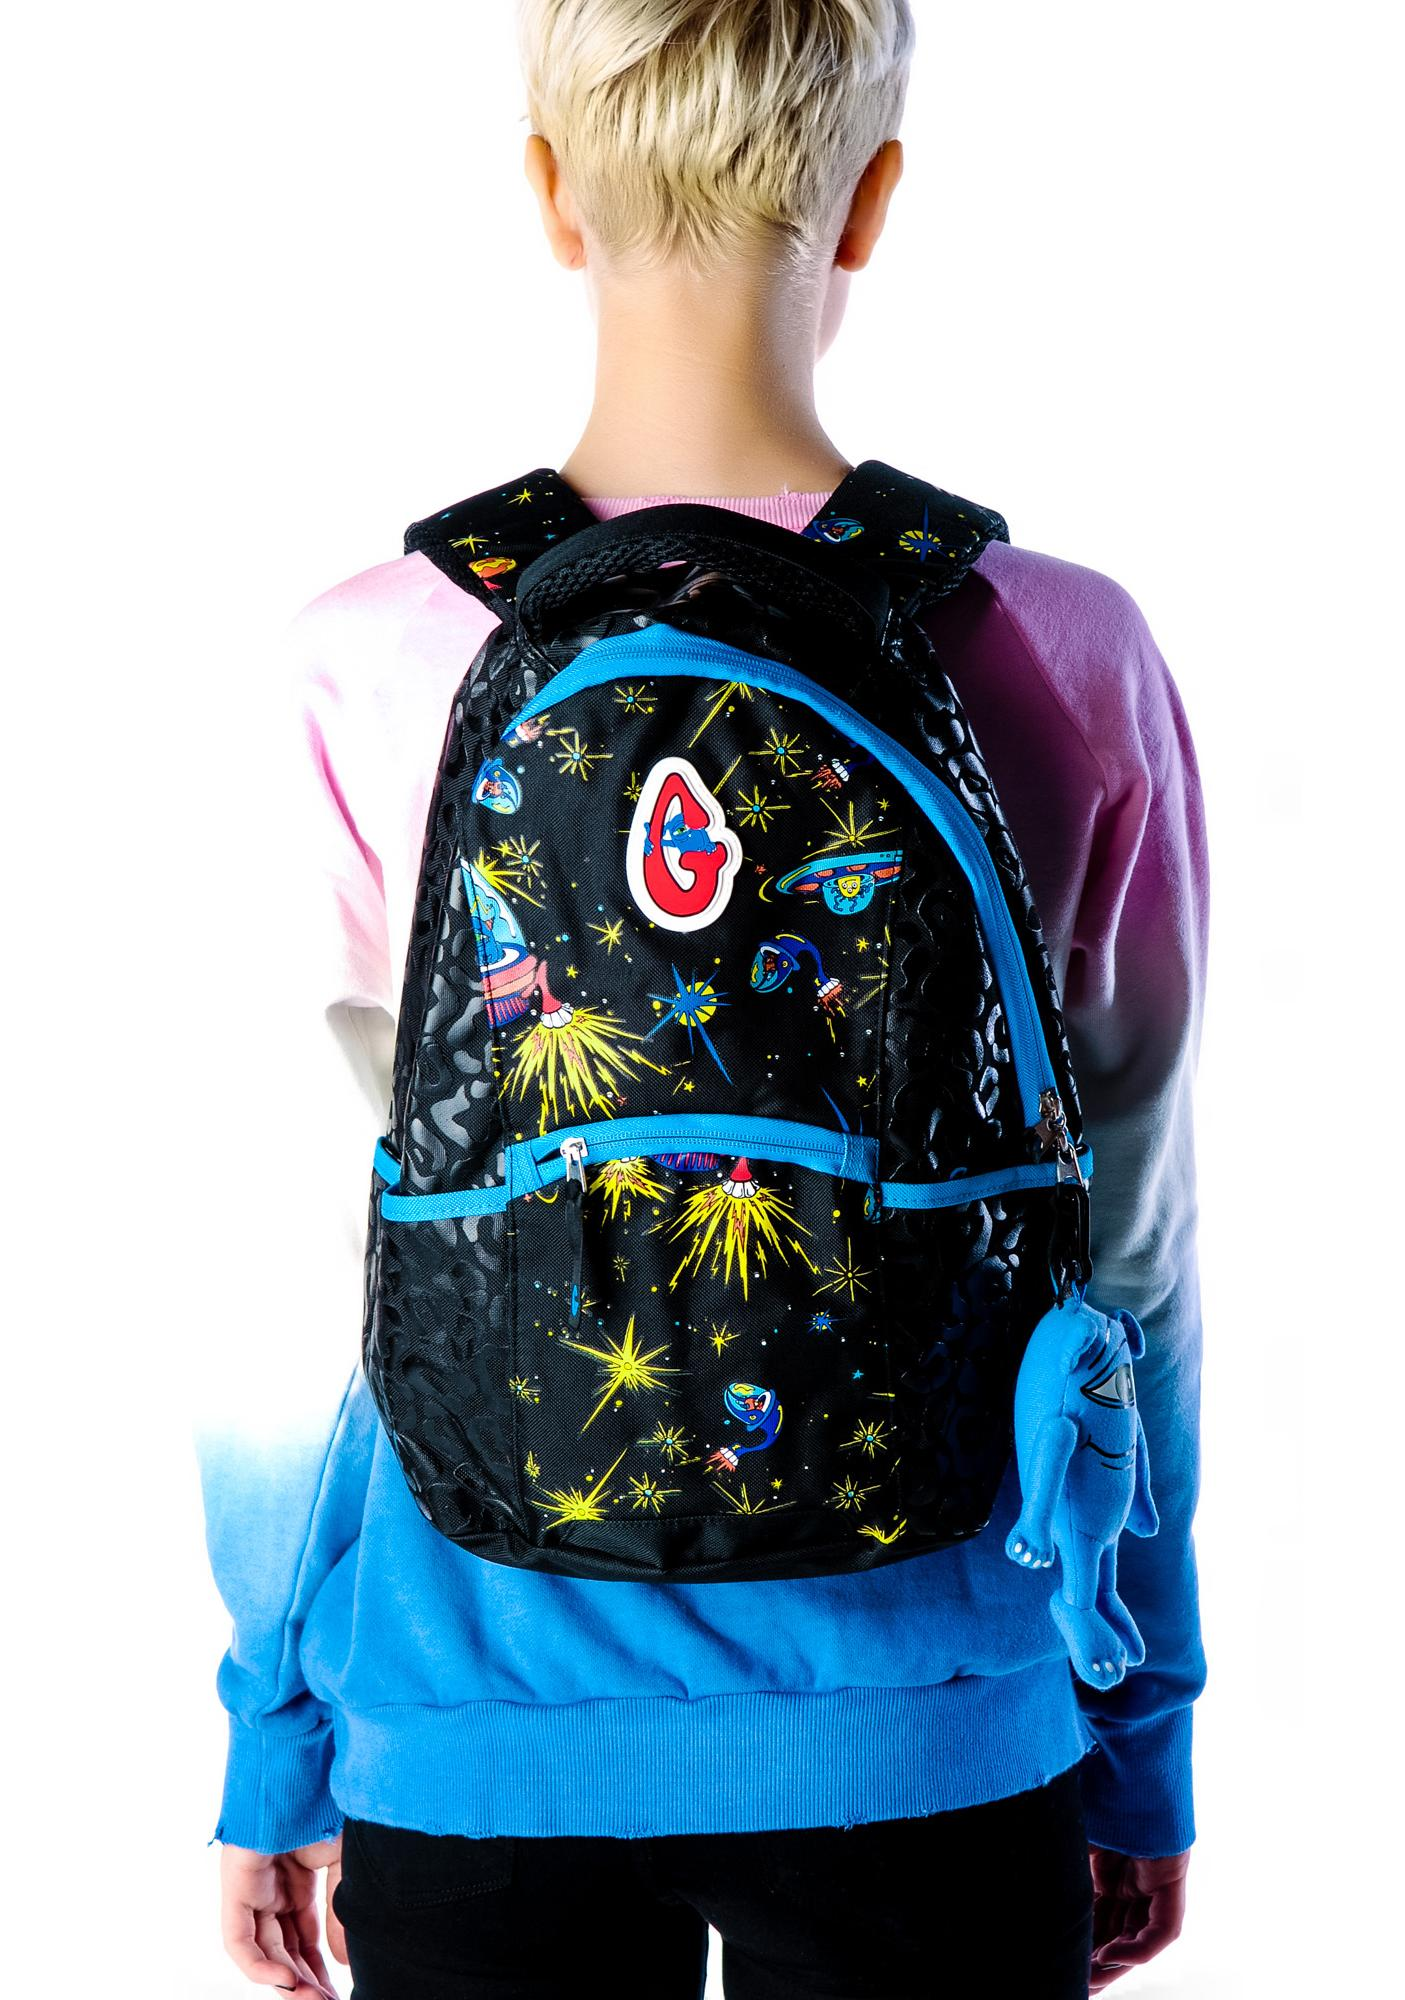 Grawzulz Alien Adventure Backpack